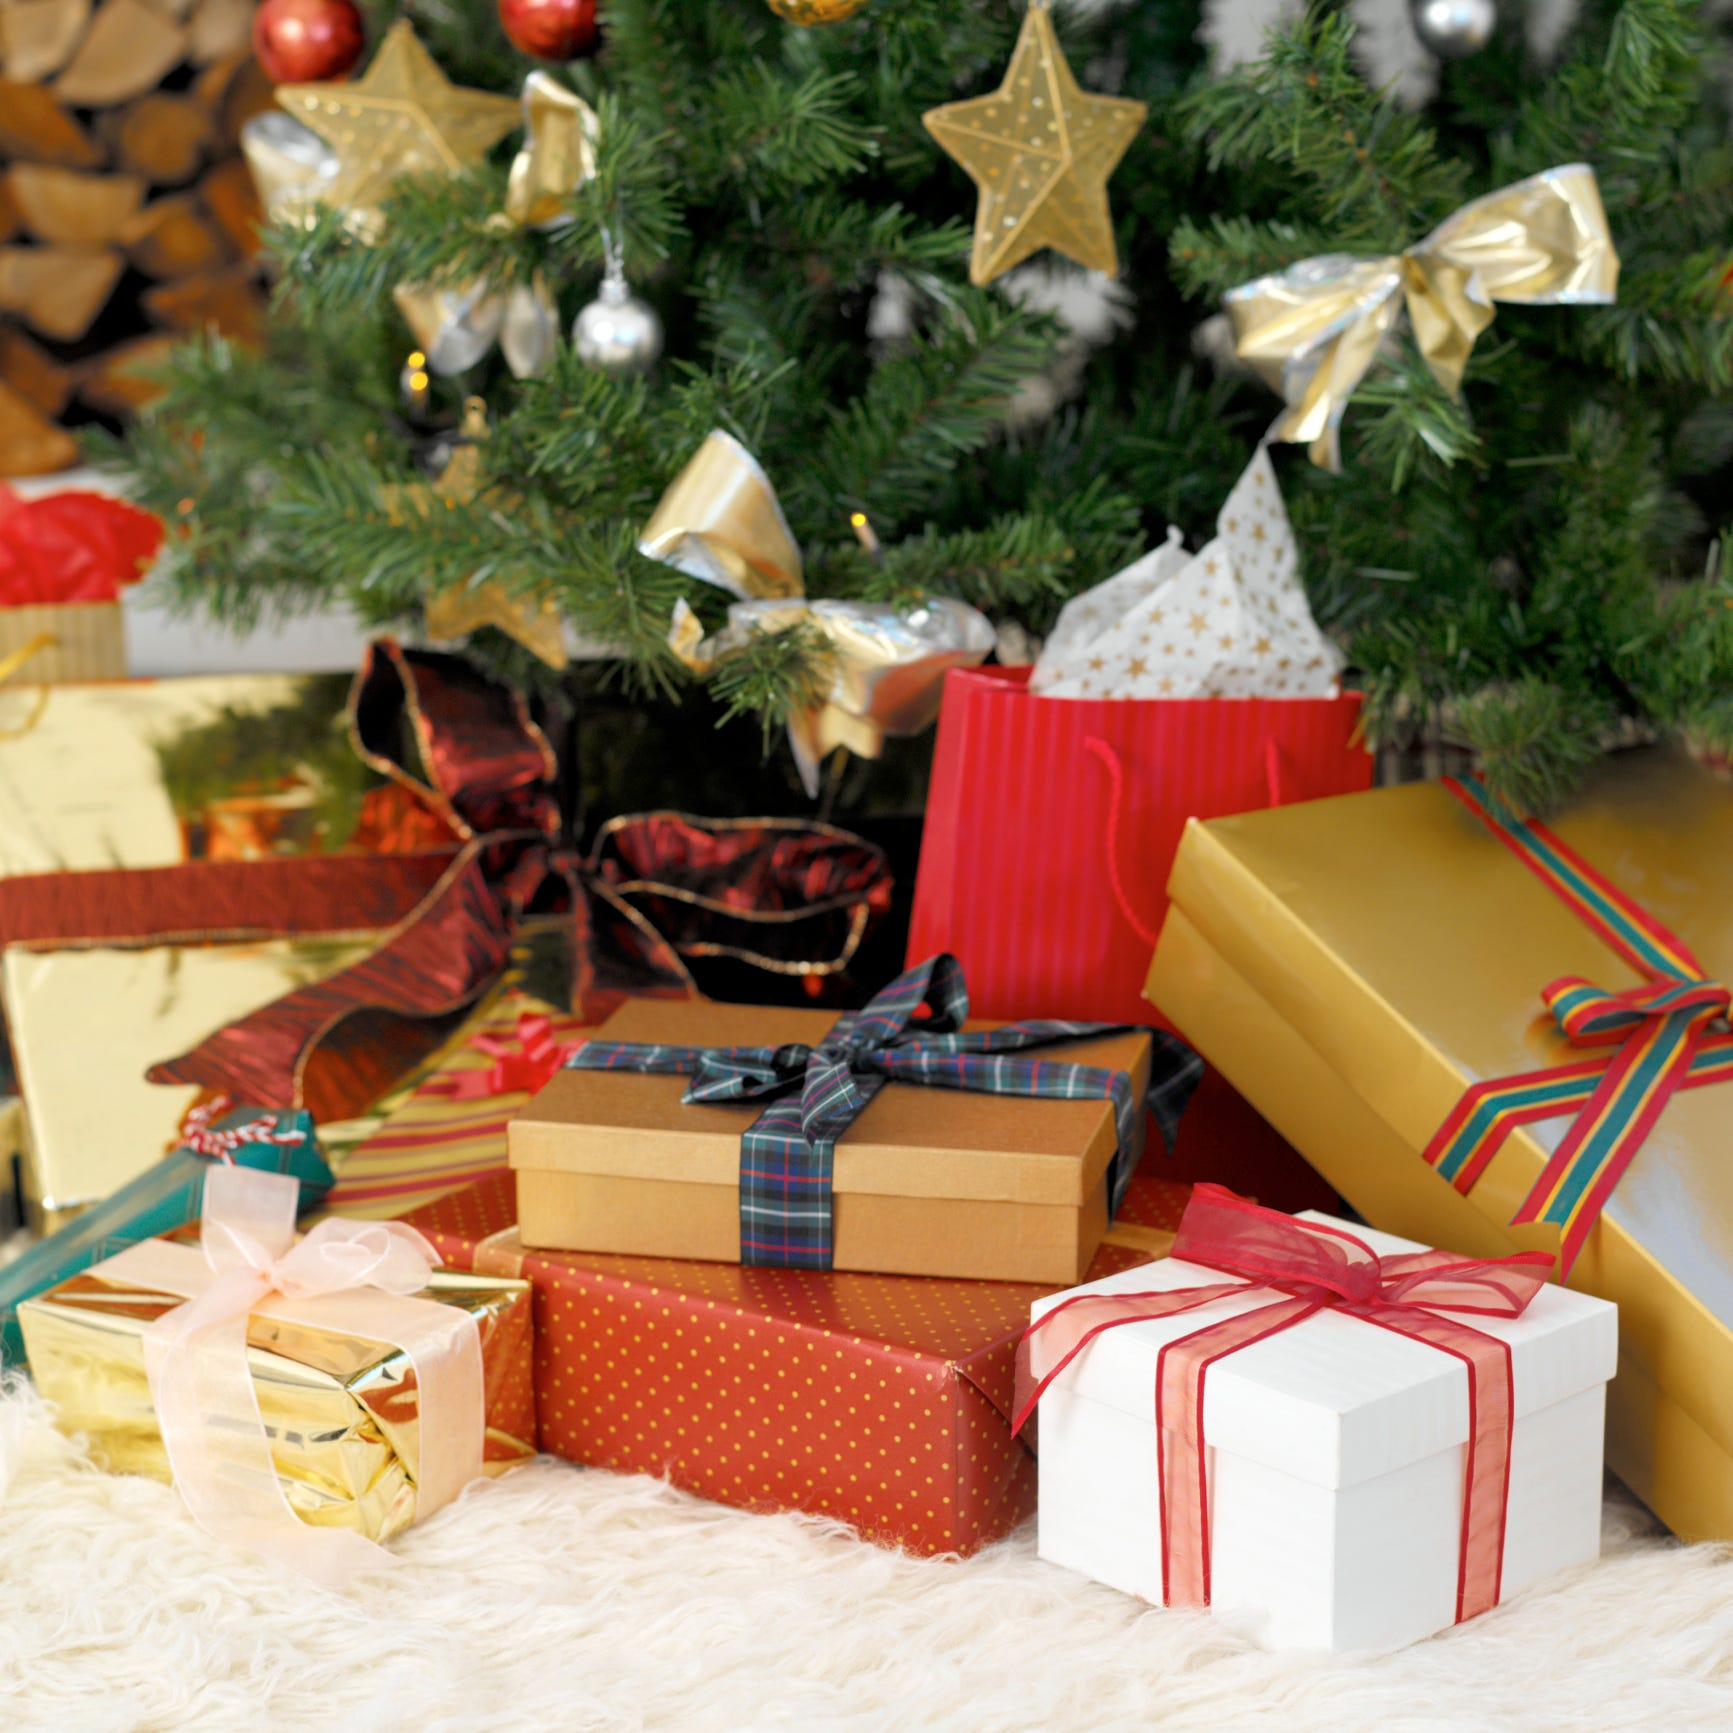 3 ways to keep your Amazon gifts under wraps until Christmas Day